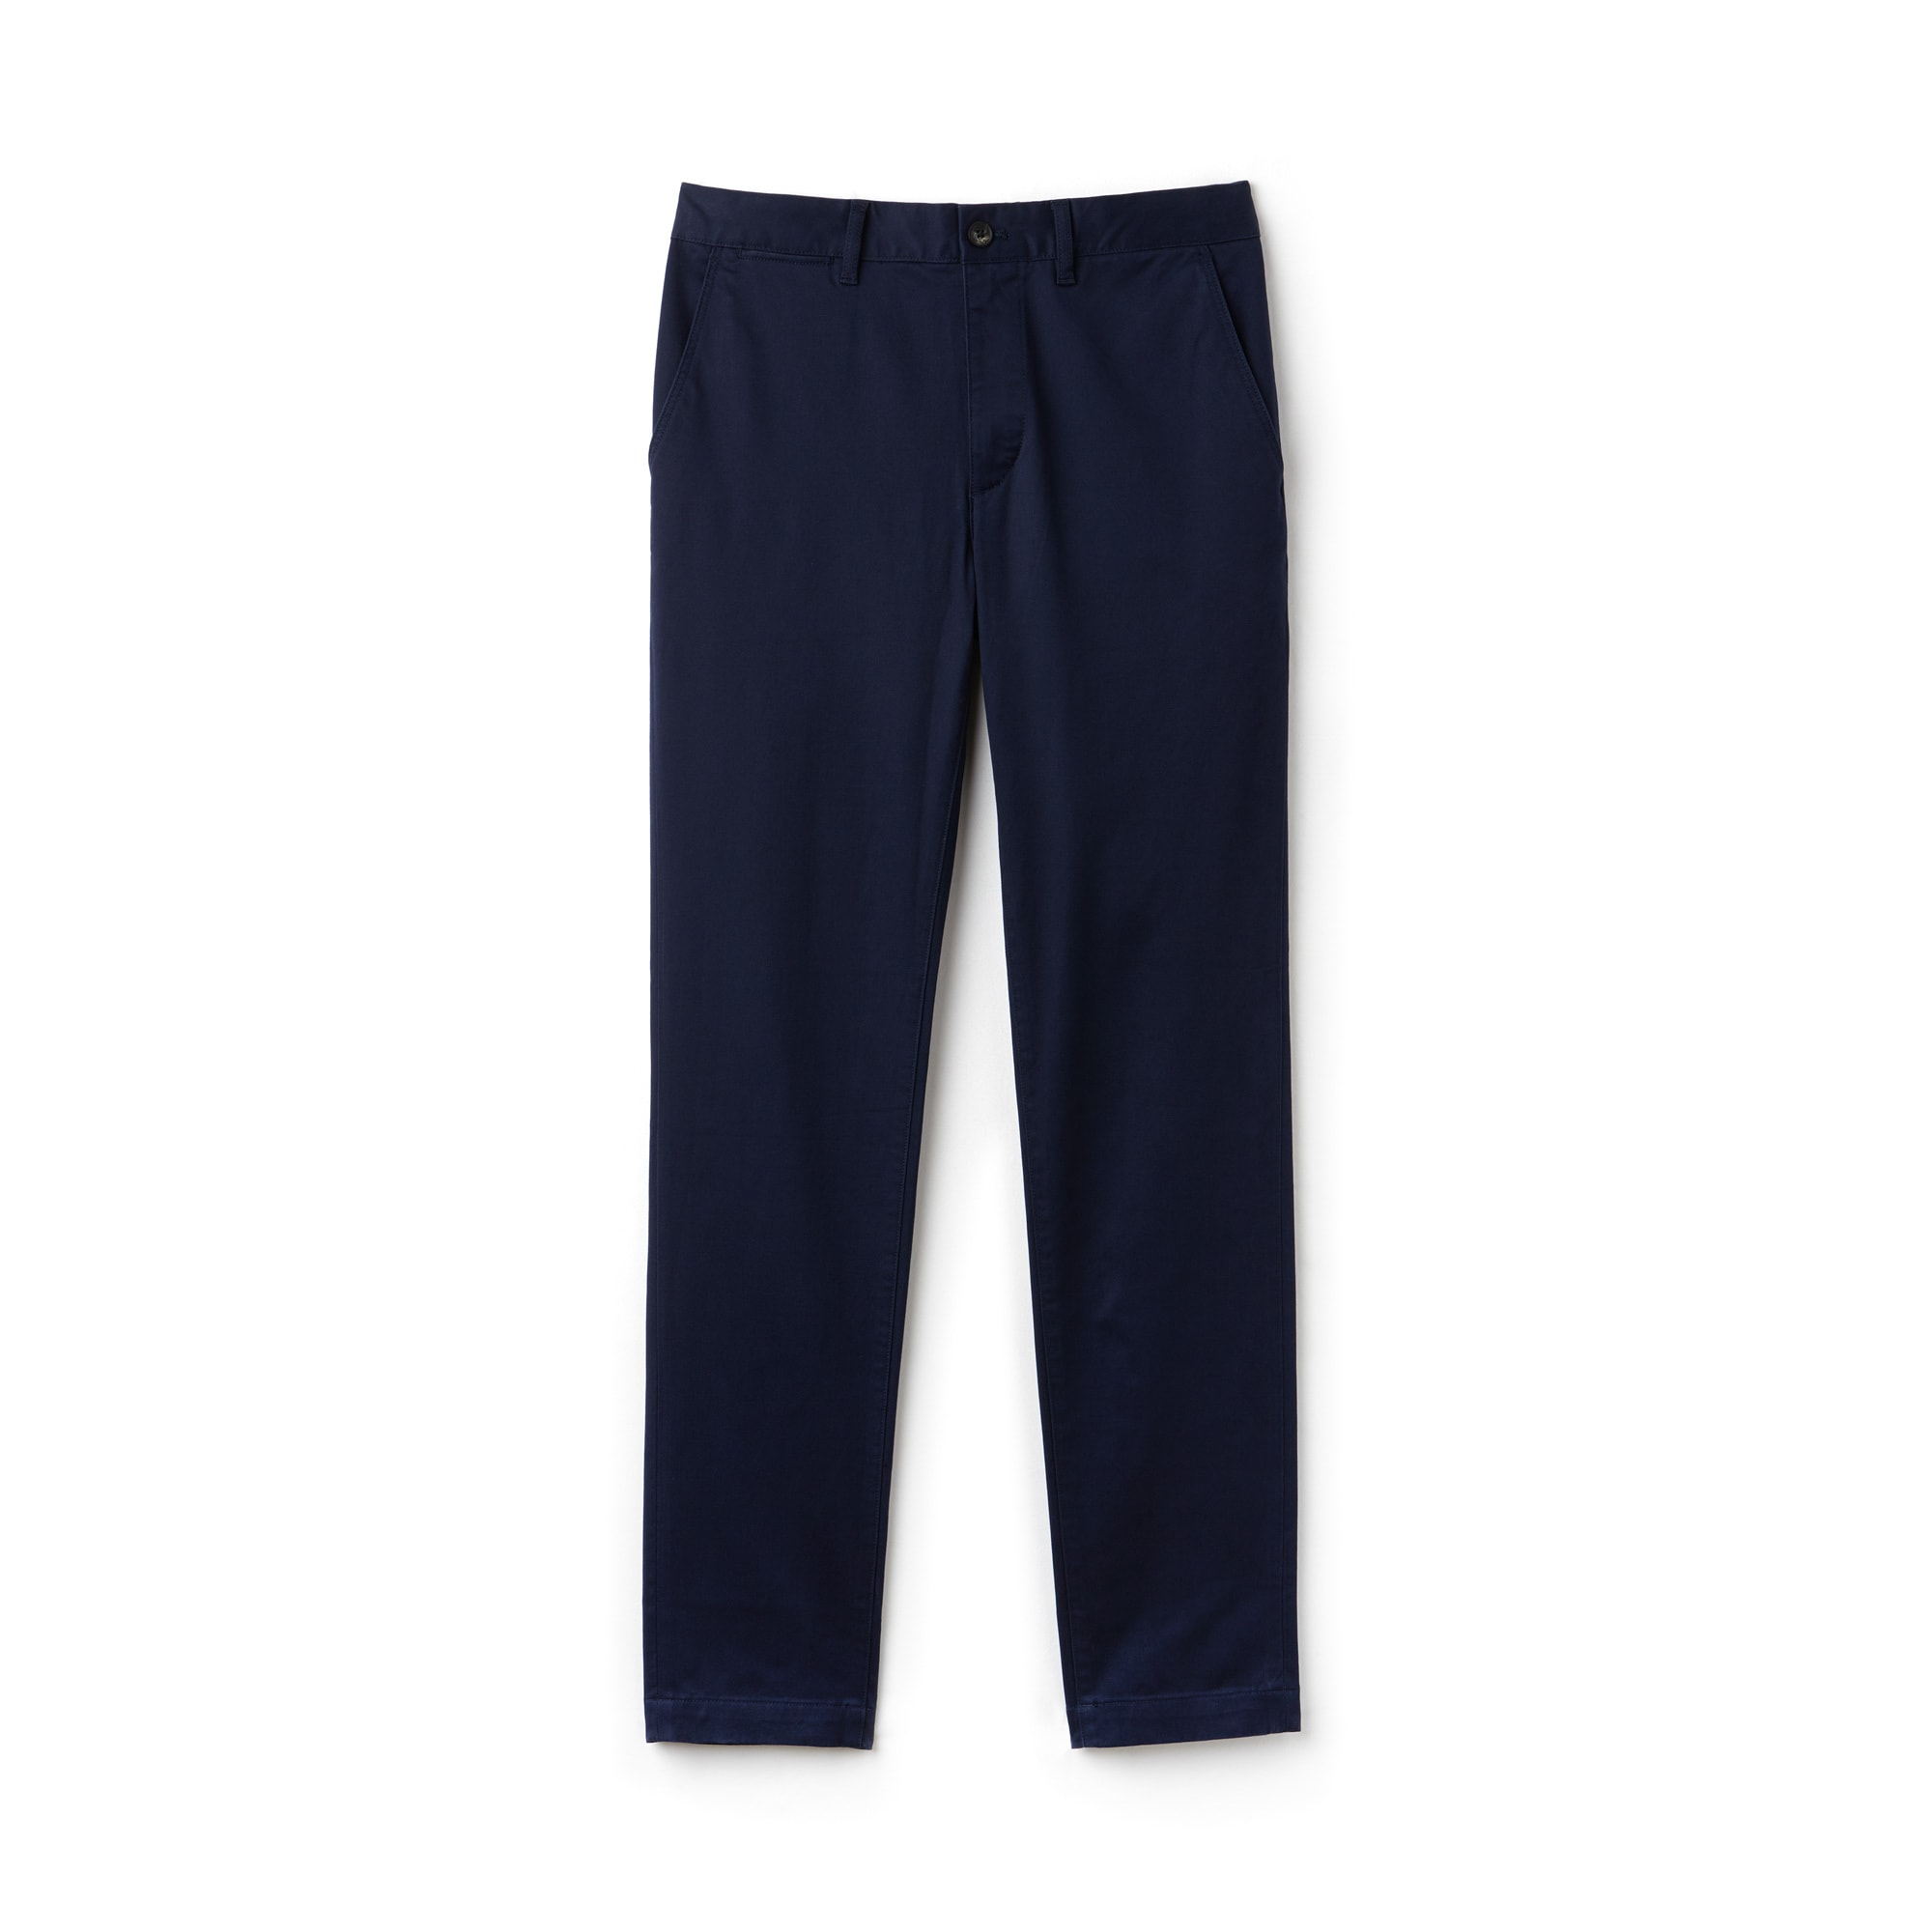 Lacoste Chinos in Navy Blue smart casual stretch cotton twill trousers